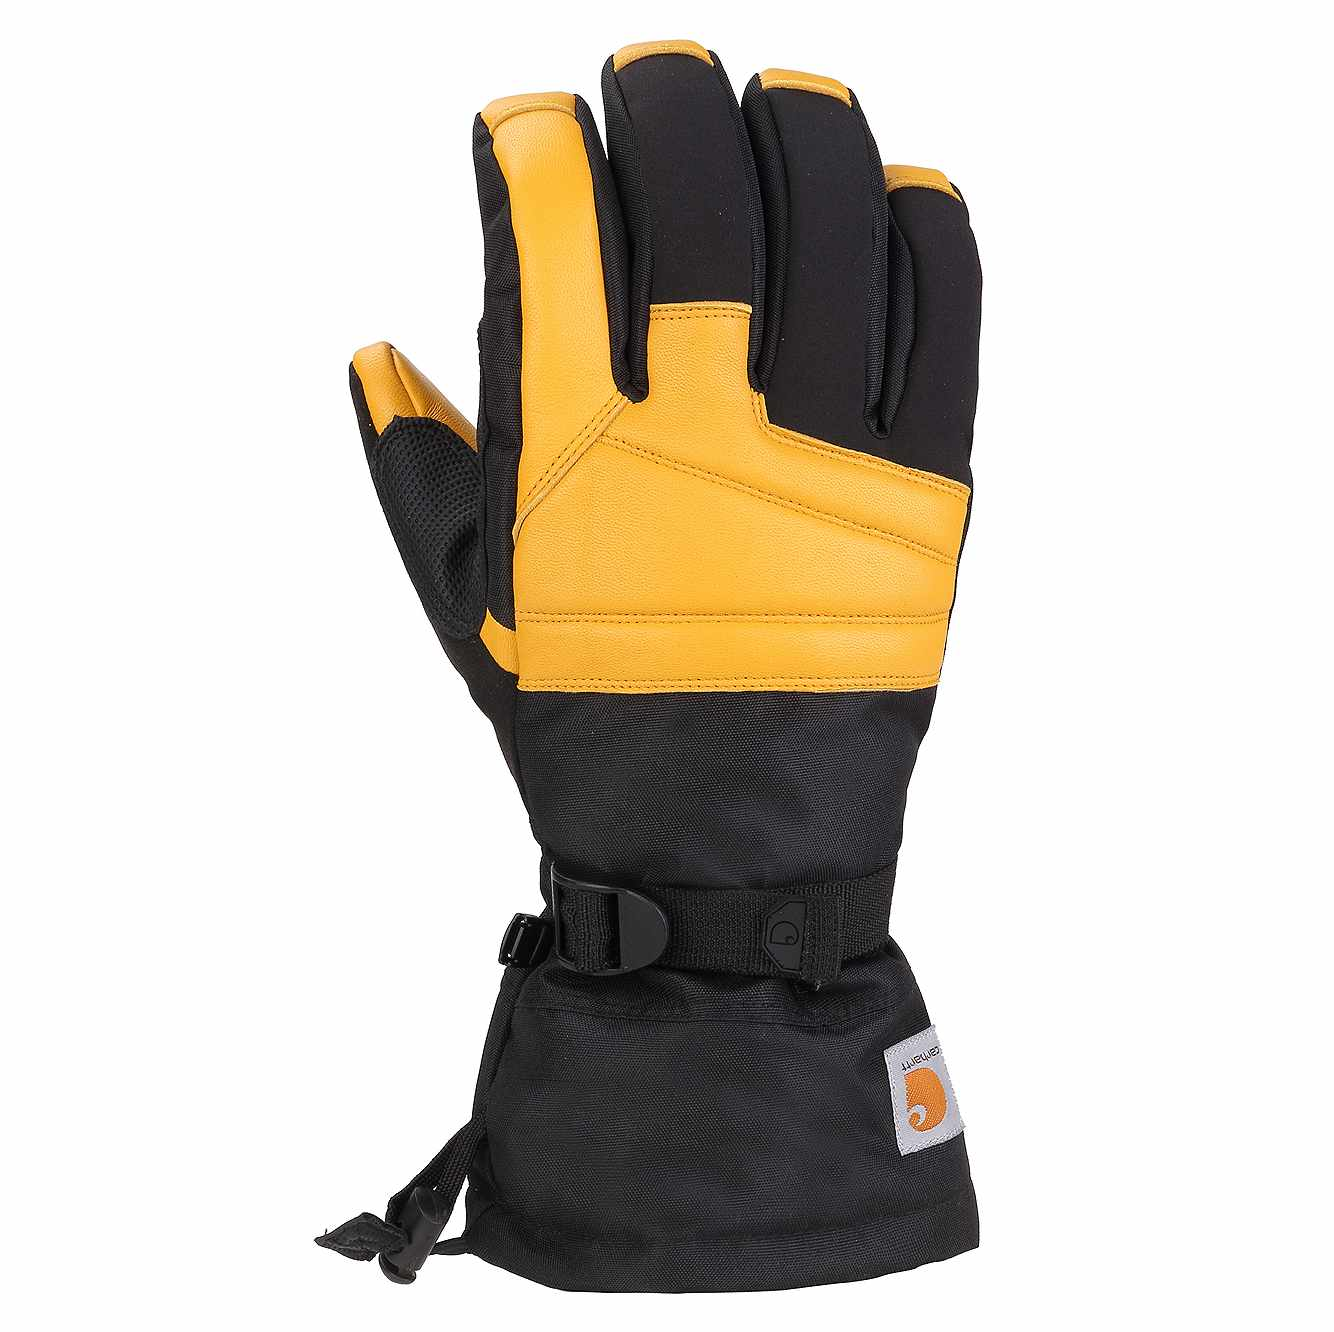 Picture of Cold Snap Insulated Glove in Black Barley